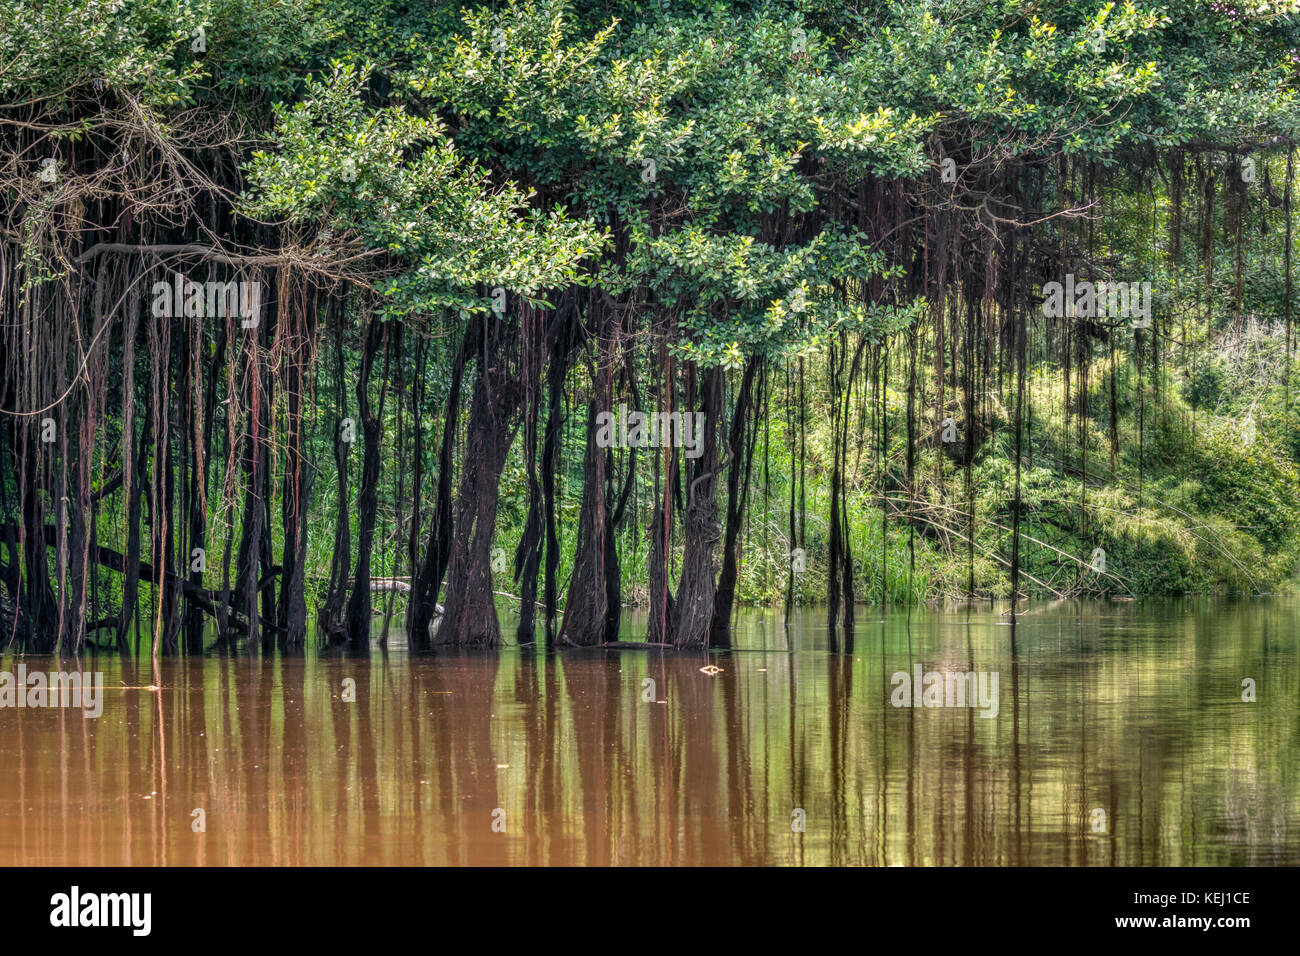 Amazon rainforest with aerial roots hanging from trees, Pacaya Samiria National Reserve, Yanayacu River, Peru - Stock Image